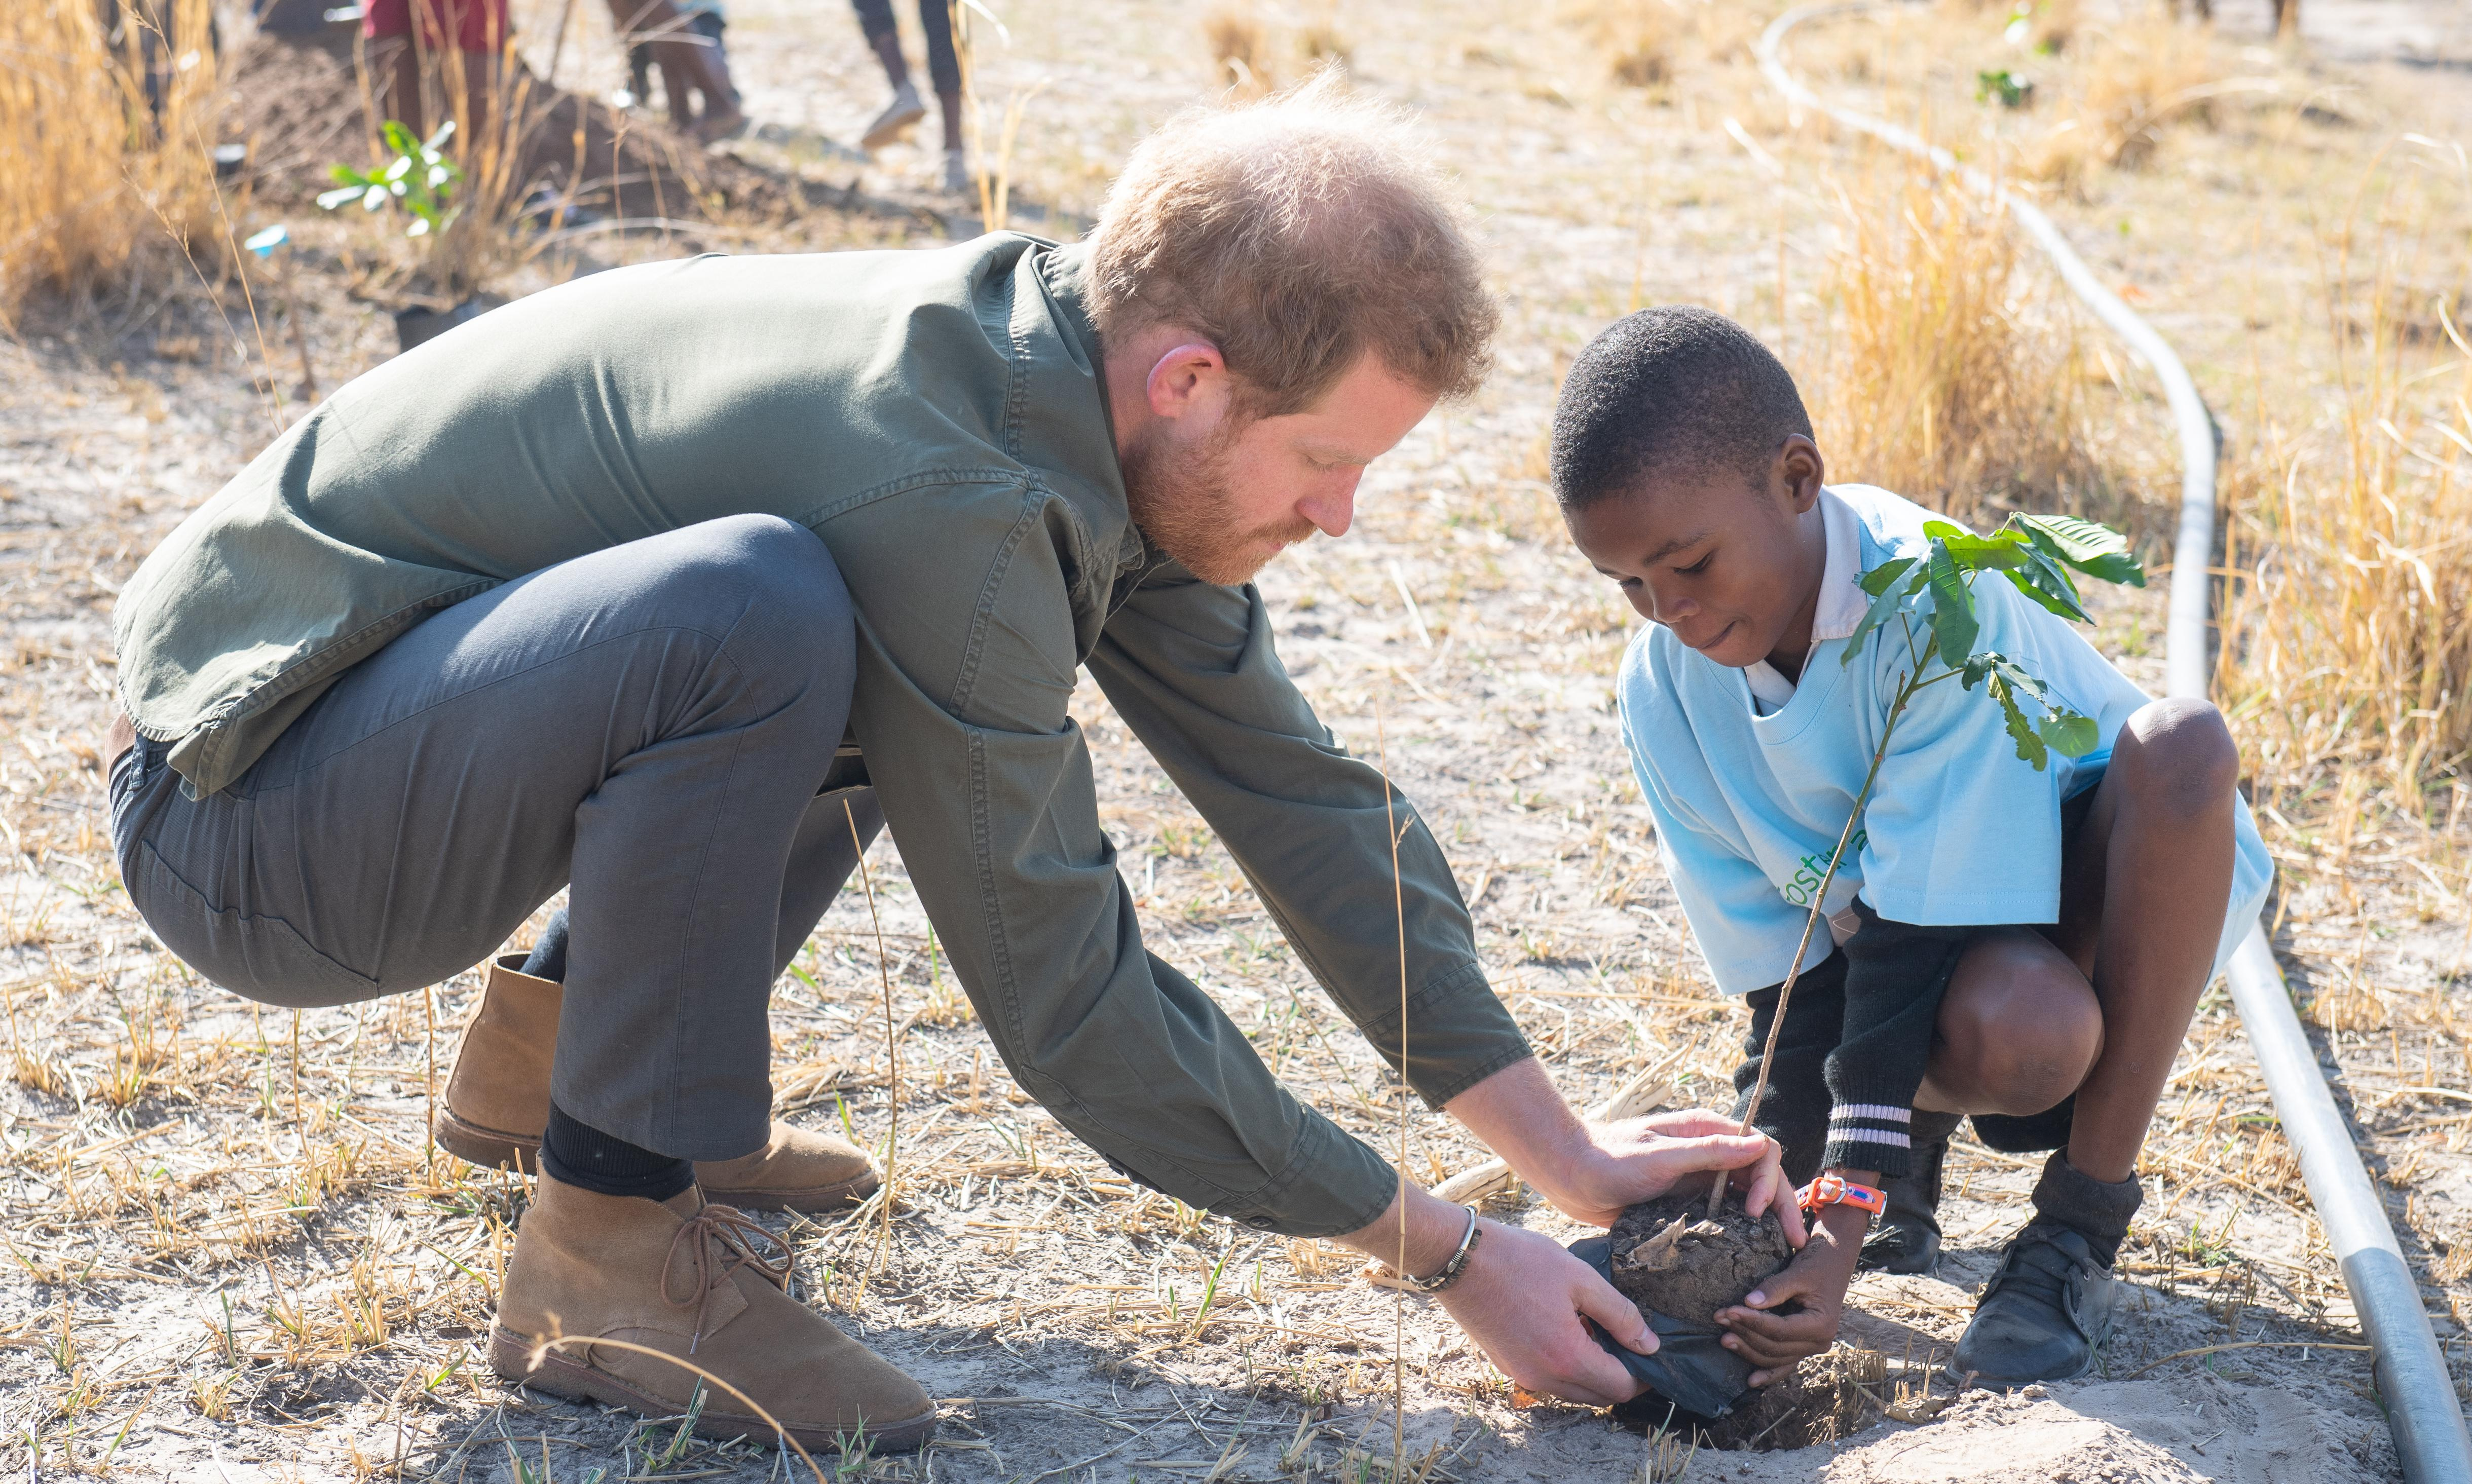 Science on climate crisis is undeniable, Prince Harry says